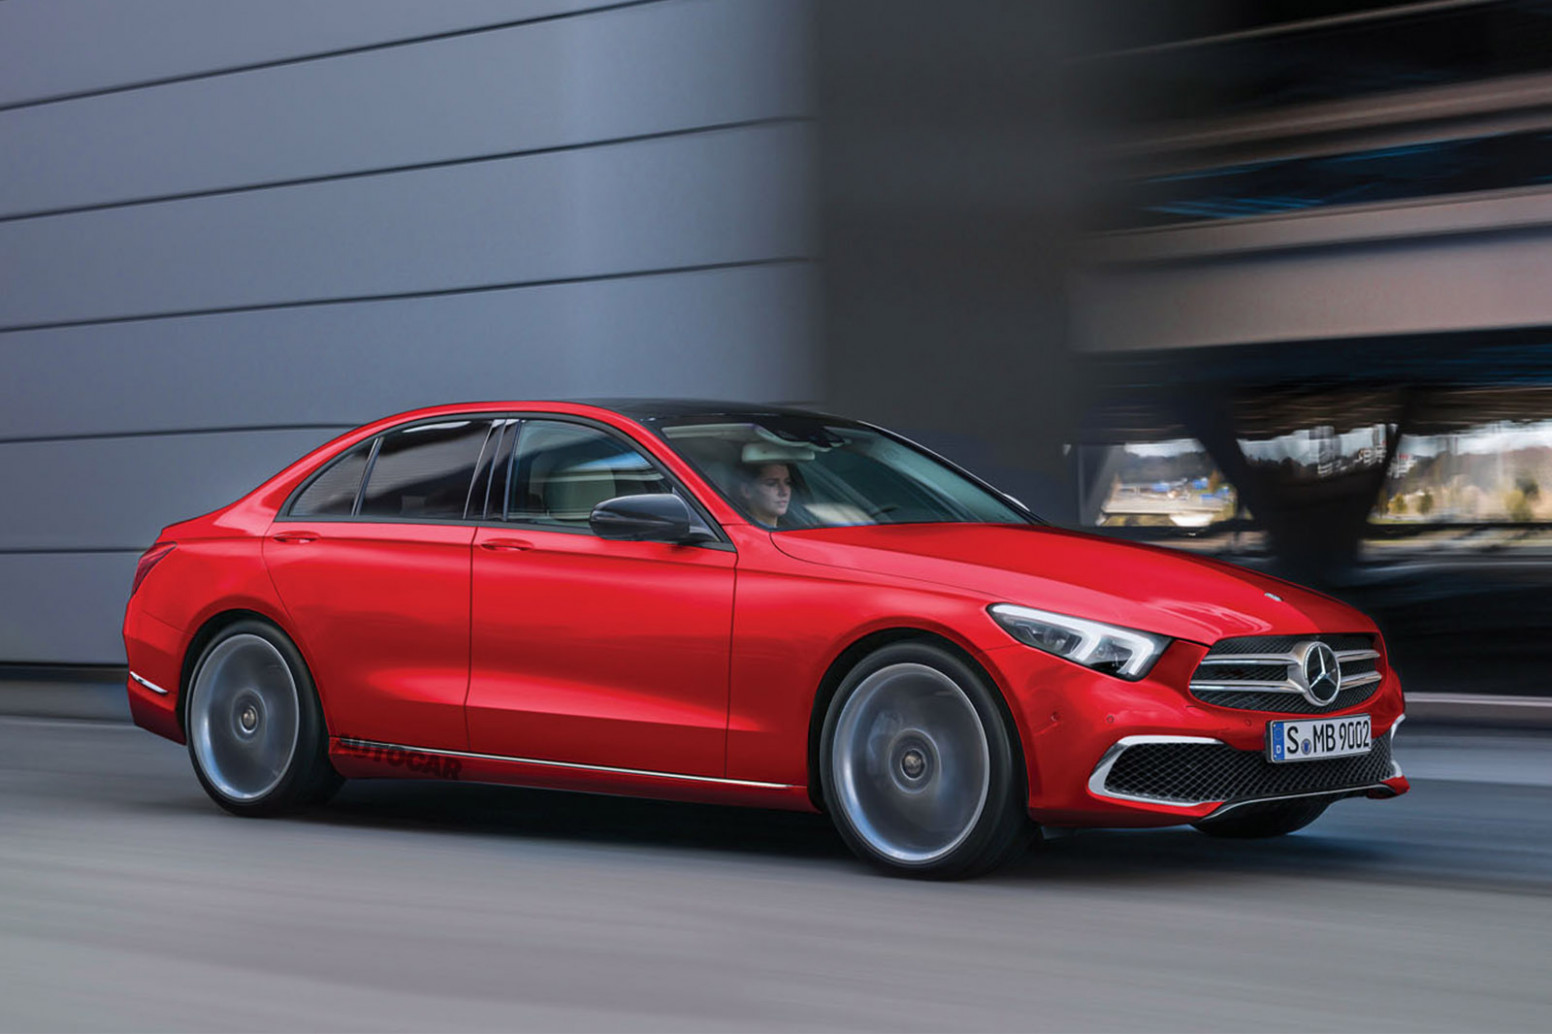 Redesign and Review 2022 Mercedes CLA 250